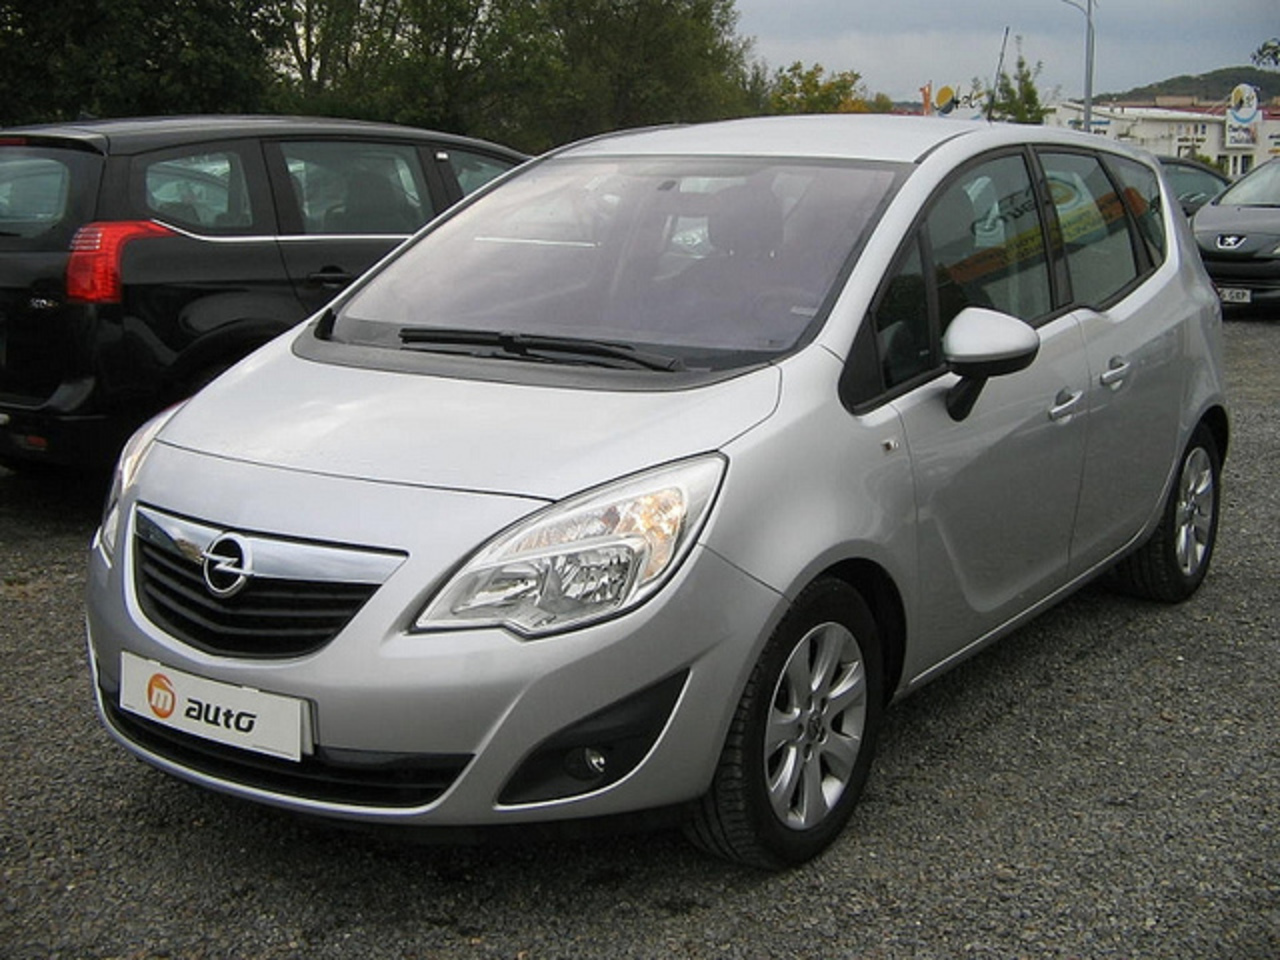 opel meriva 1.7 cdti 110 cv enjoy numero 1239 | Flickr - Photo ...